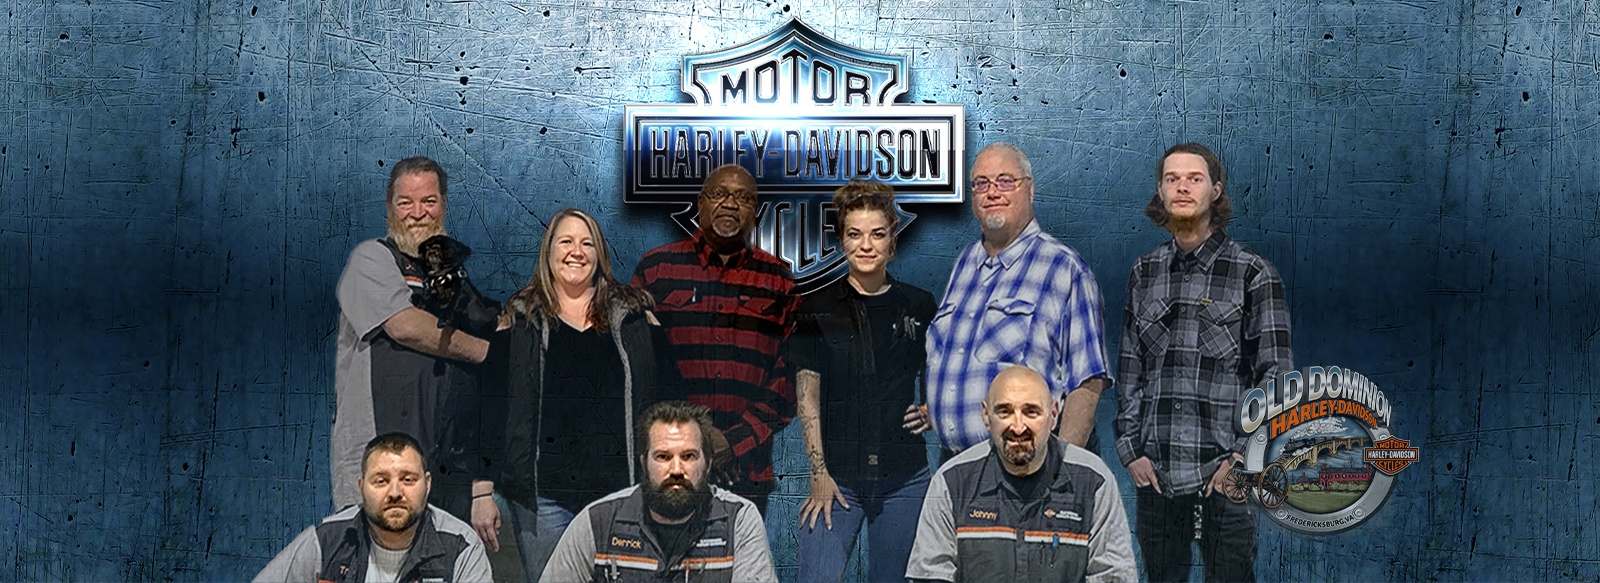 Old Dominion Harley-Davidson Staff of riders and motorcycle enthusiast